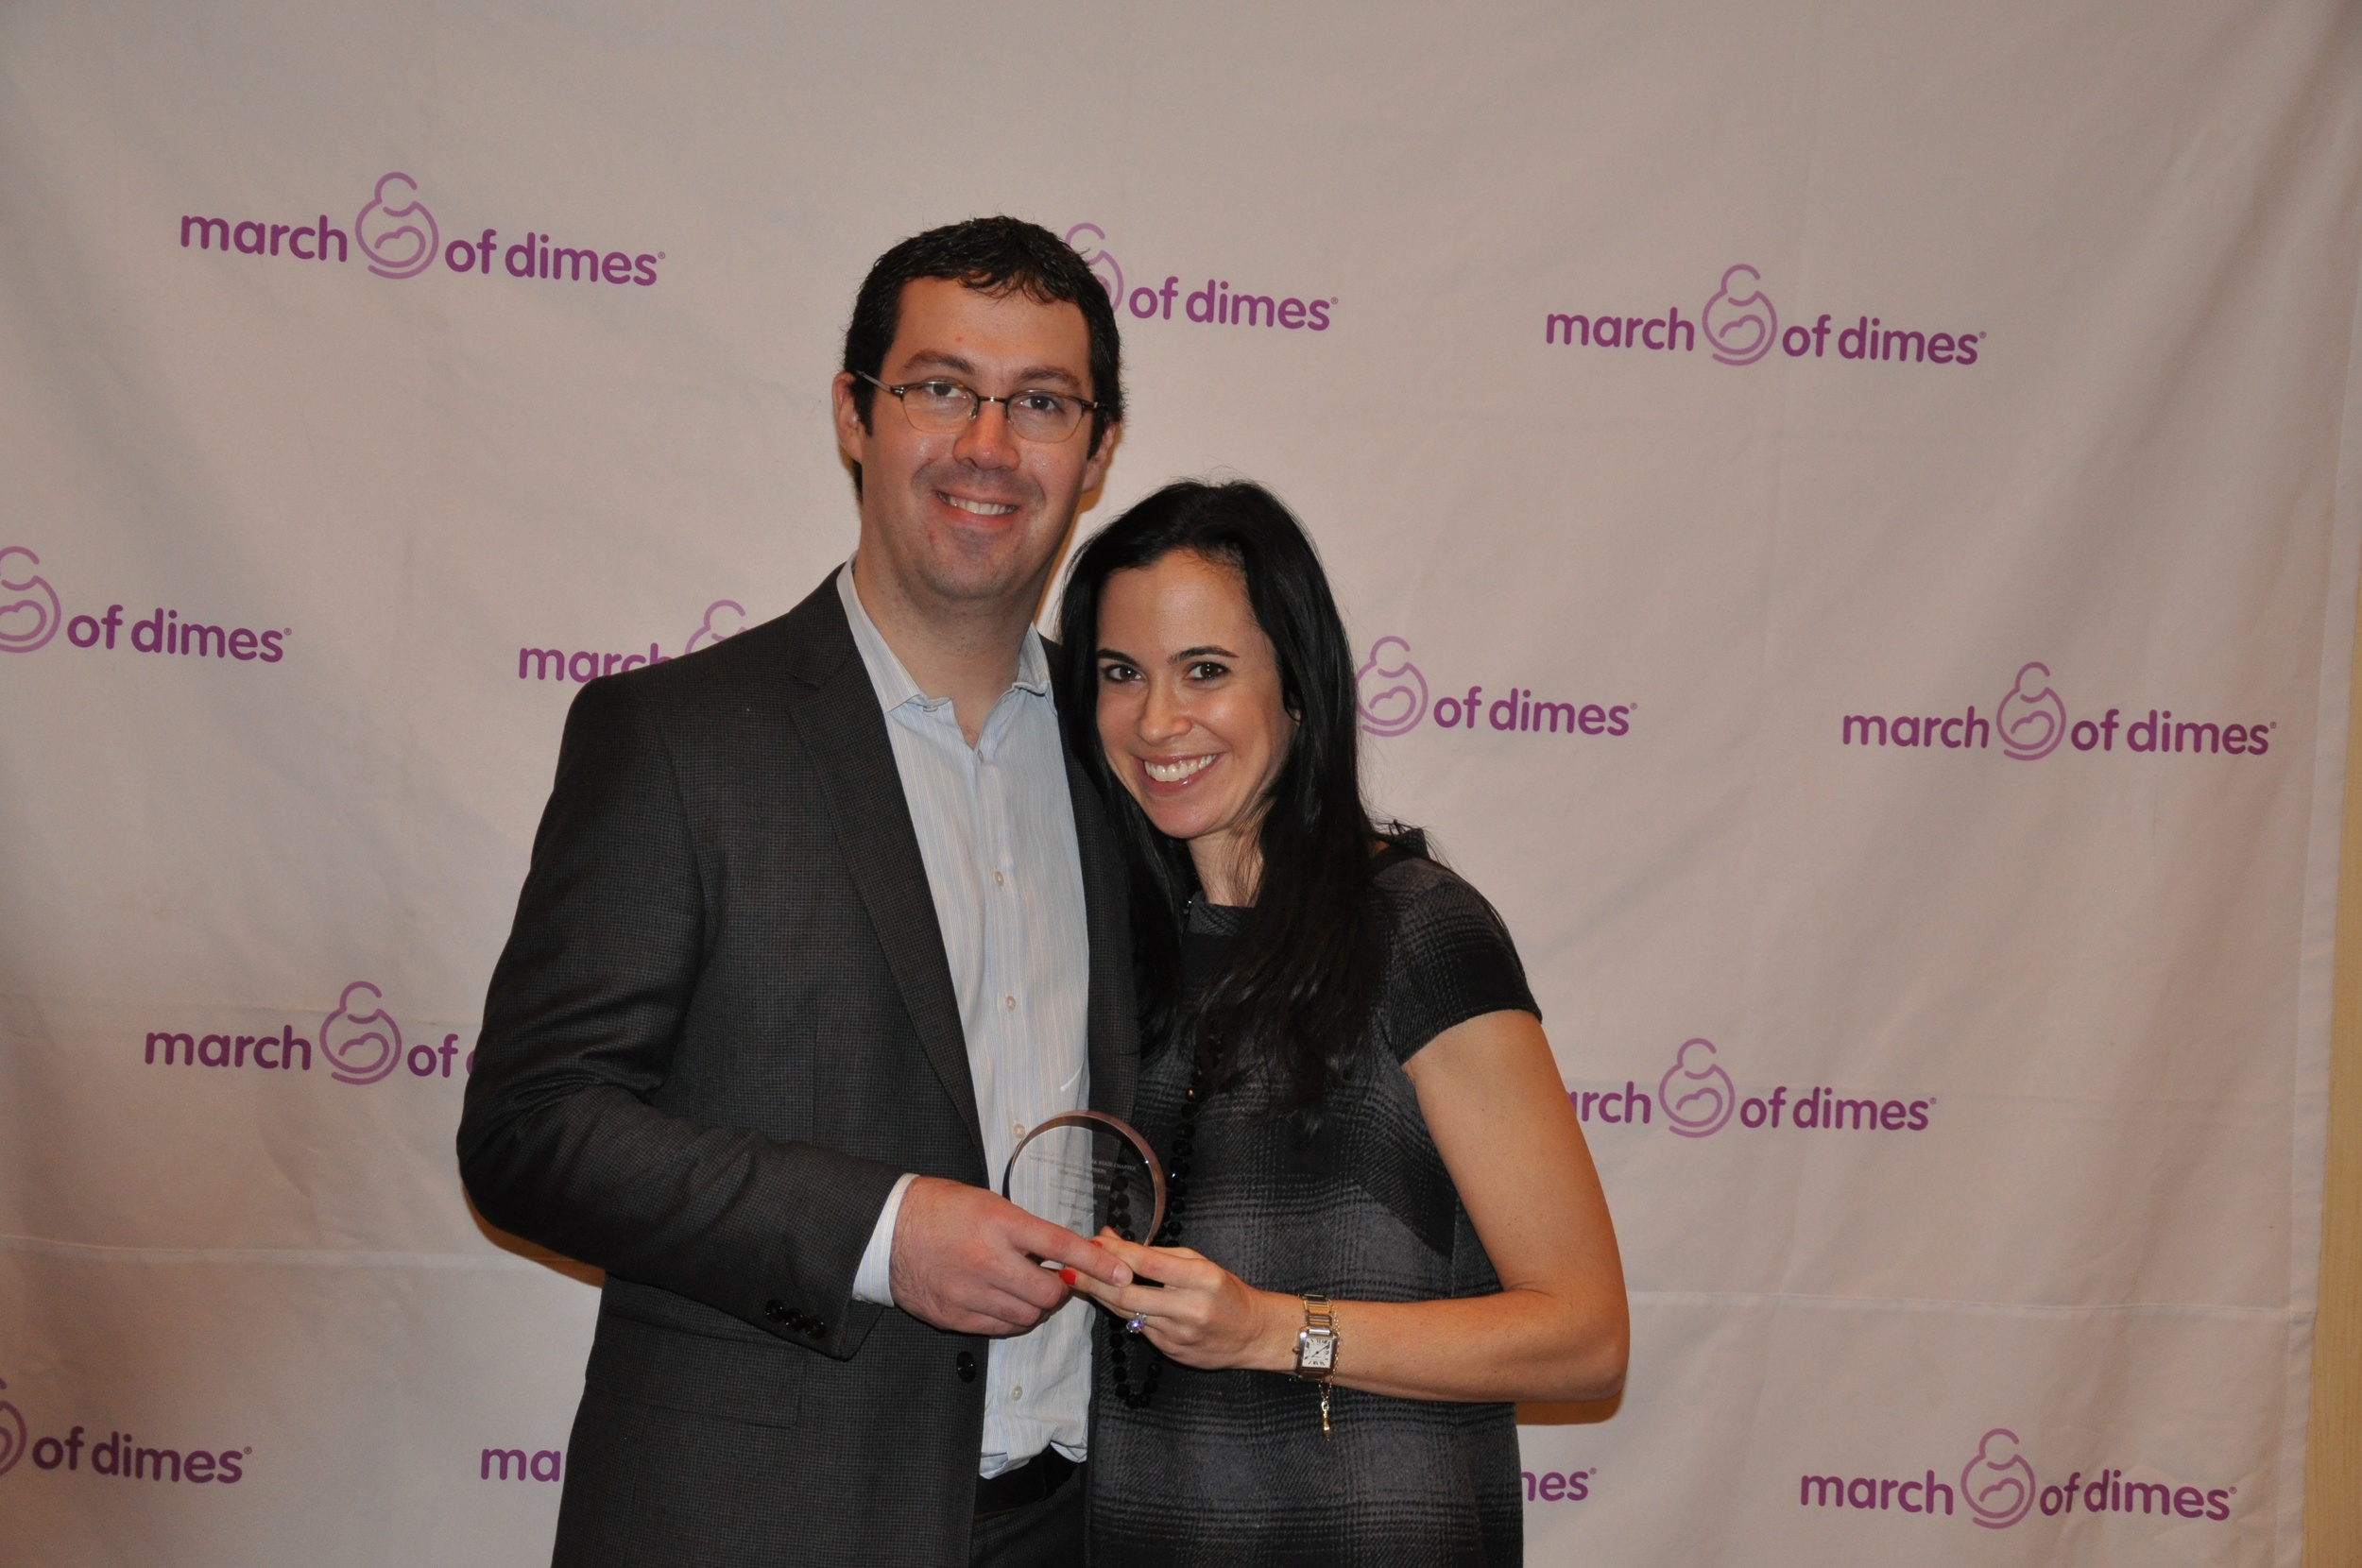 josh--paulina-levine-at-the-volunteer-of-the-year-awards_7016411669_o.jpg